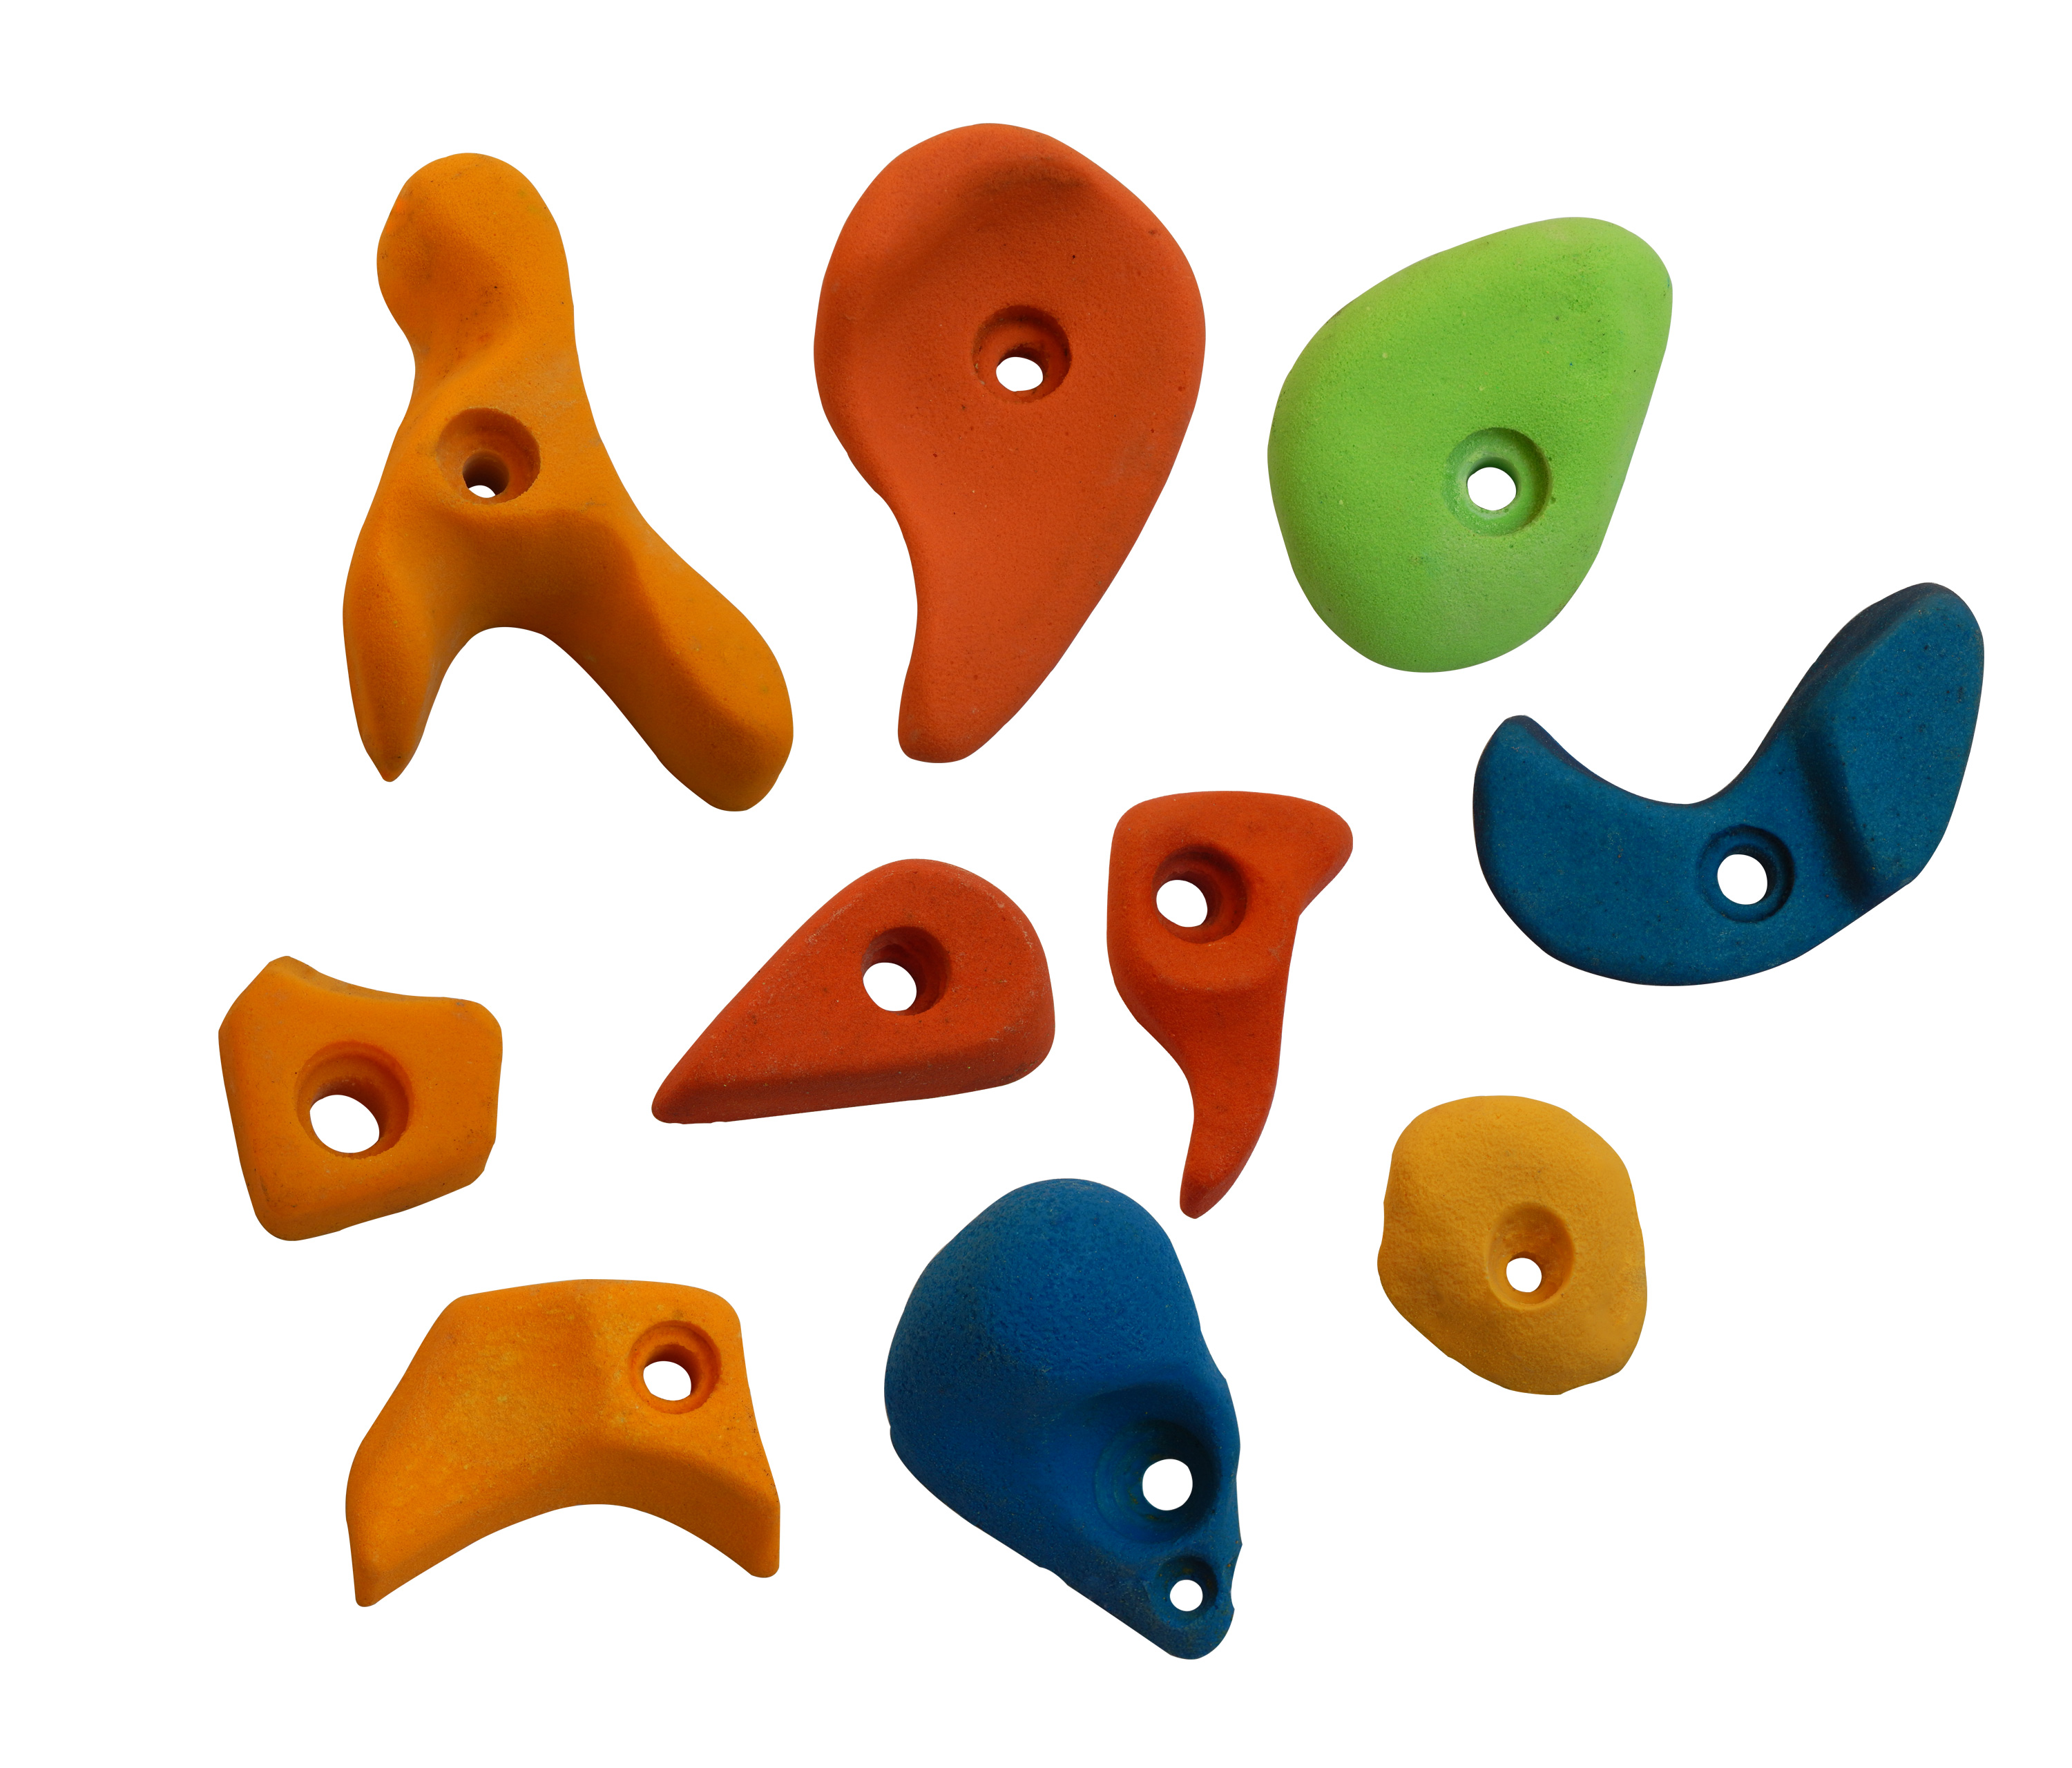 Mix Climbing Holds Manufacturers in Chhattisgarh